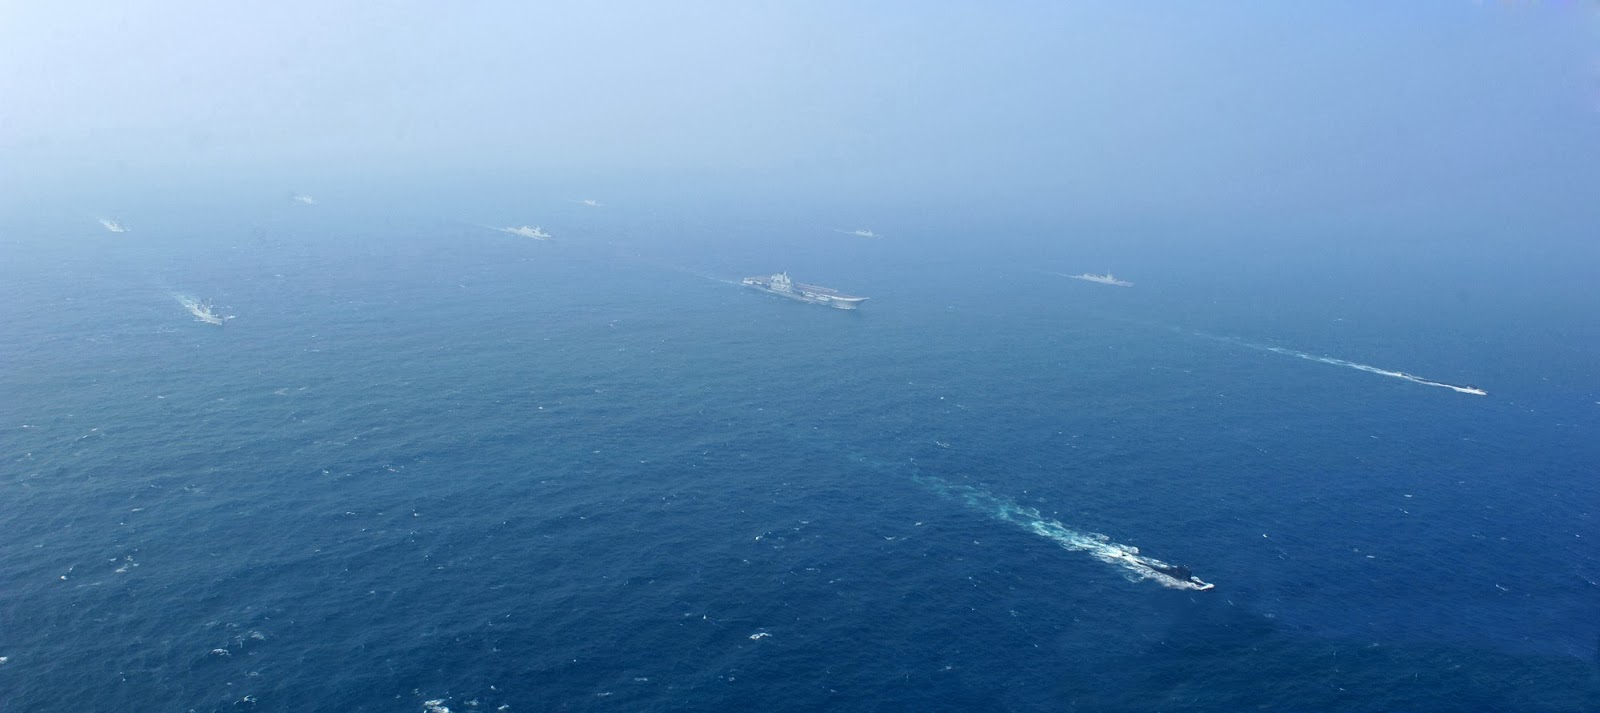 Chinese Carrier Battle Group (CVBG) FormationLiaoning escort group 4 incl. subs Type 052D Guided Missile Destroyer, Type 052C , Peoples Liberation Army Navy 5 Type 052C Type 052D destroyers (8)